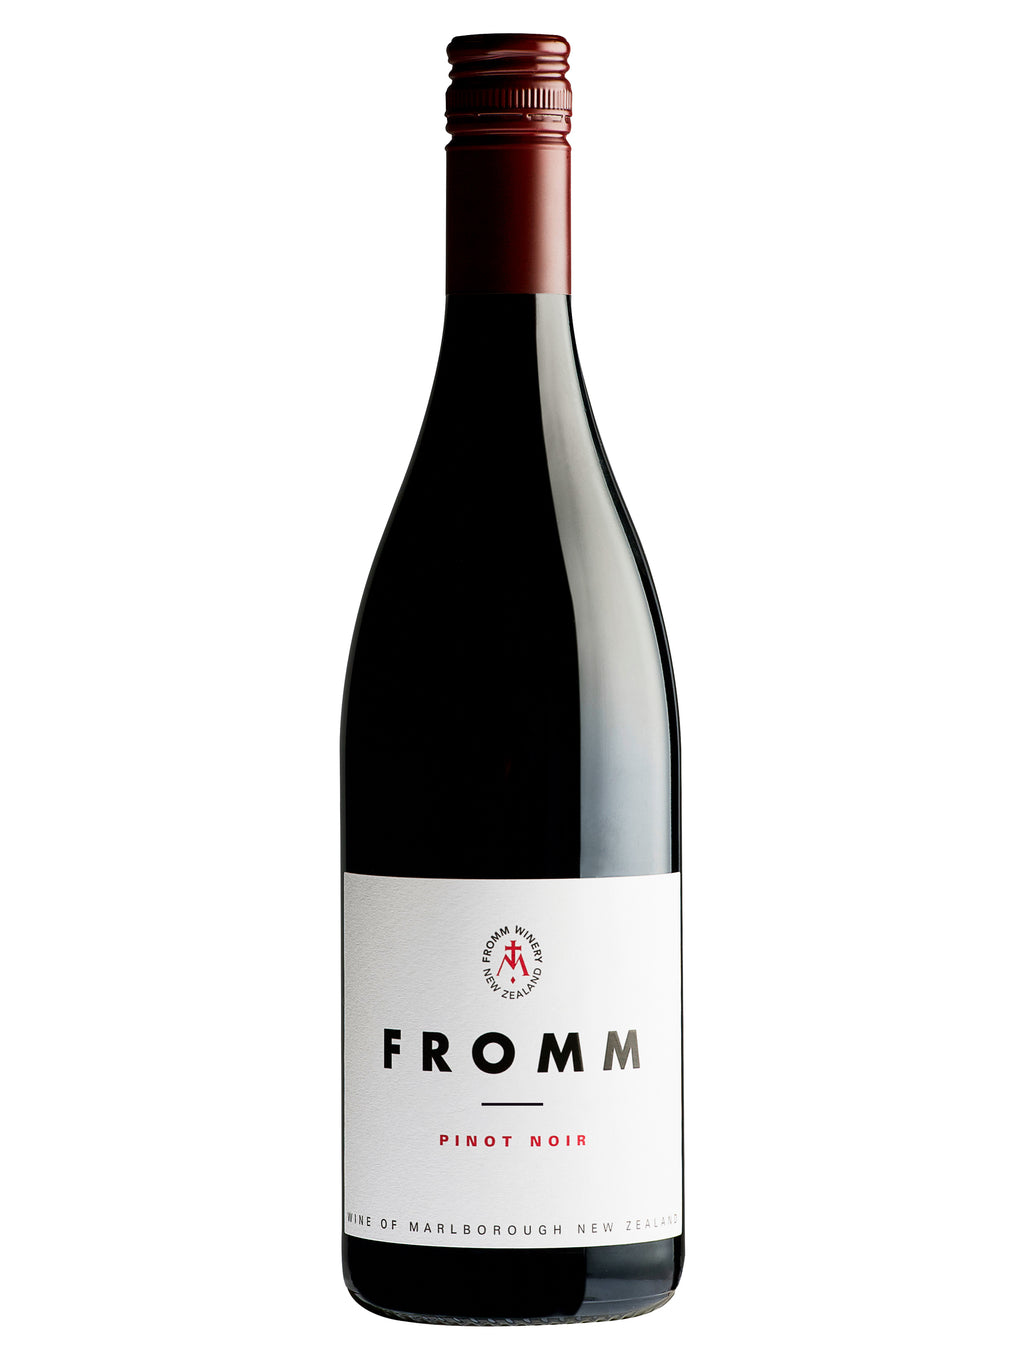 Fromm Pinot Noir, New Zealand Wine, Marlborough Pinot Noir, Fromm Winery, Winetopia, Auckland Restaurant Month, Auckland Wine Events, Wine Events NZ, Online Wine Store, New Zealand Wine Shop, Red Wine, Pinot Noir